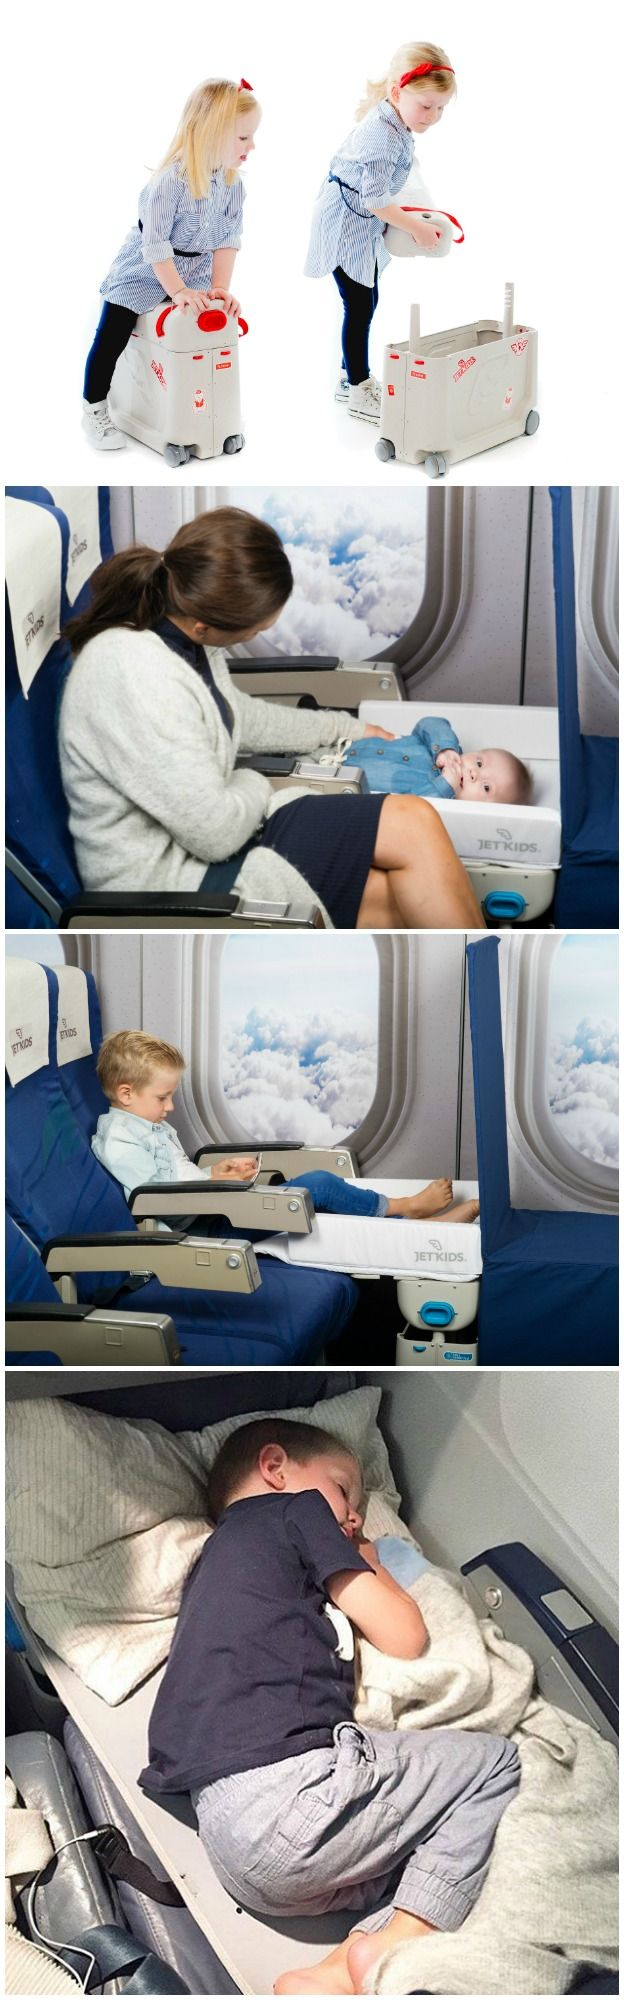 Baby bed airplane - It Is Your Child S Hand Luggage Ride On